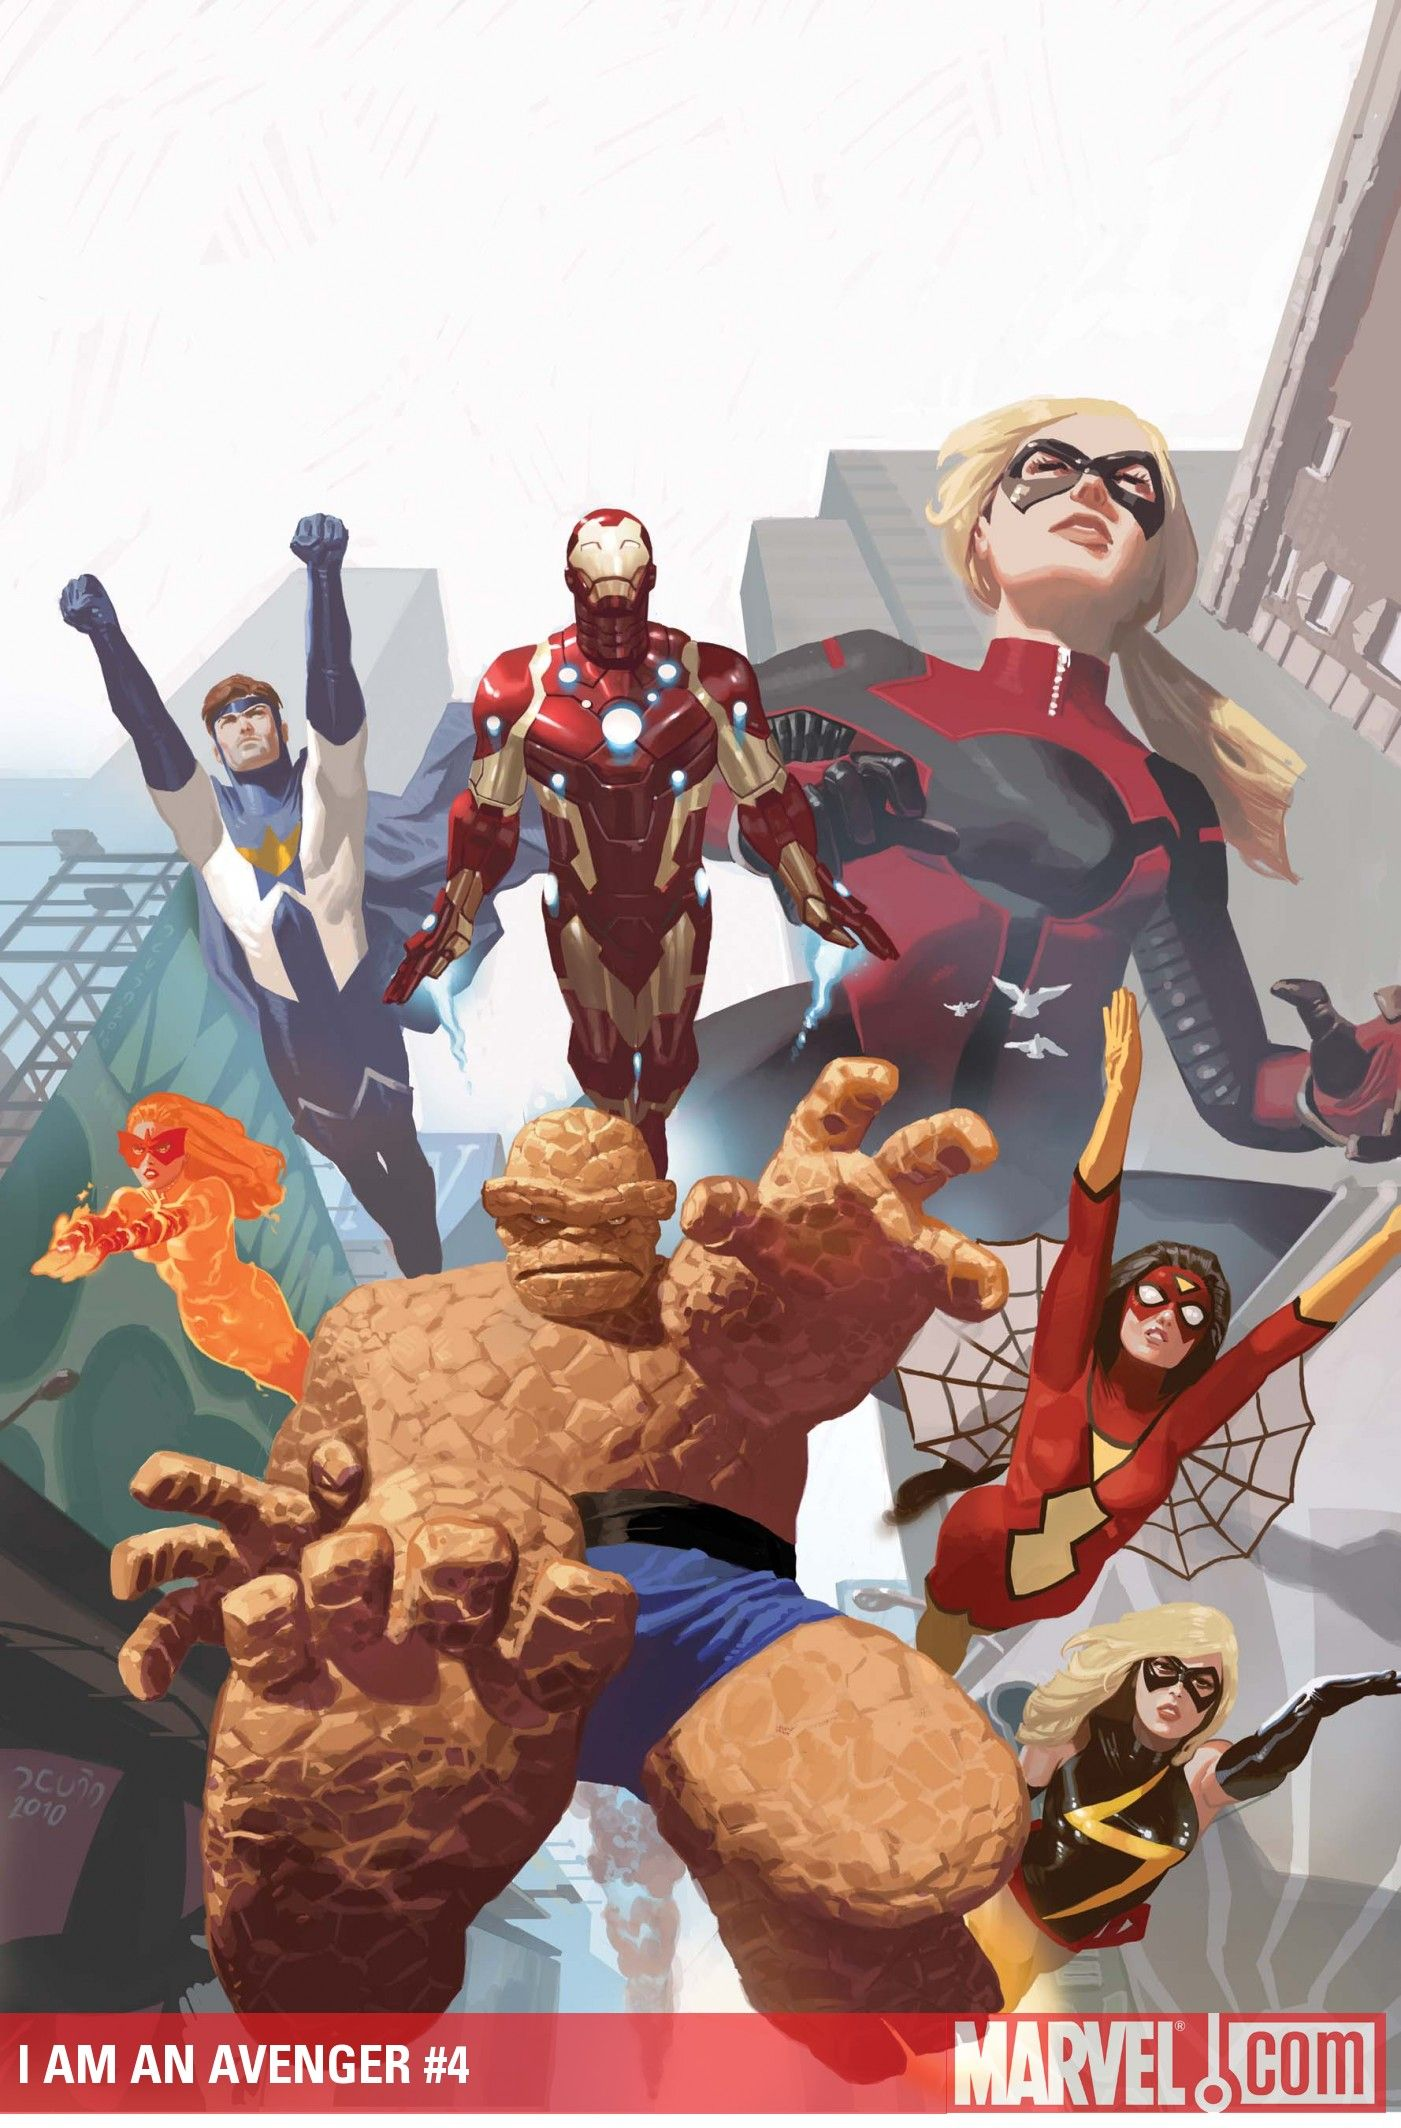 #Avengers #Fan #Art. (I Am An Avenger Vol.1 #4 Cover) By: Daniel Acuna. (THE * 5 * STÅR * ÅWARD * OF: * AW YEAH, IT'S MAJOR ÅWESOMENESS!!!™) ÅÅÅ+